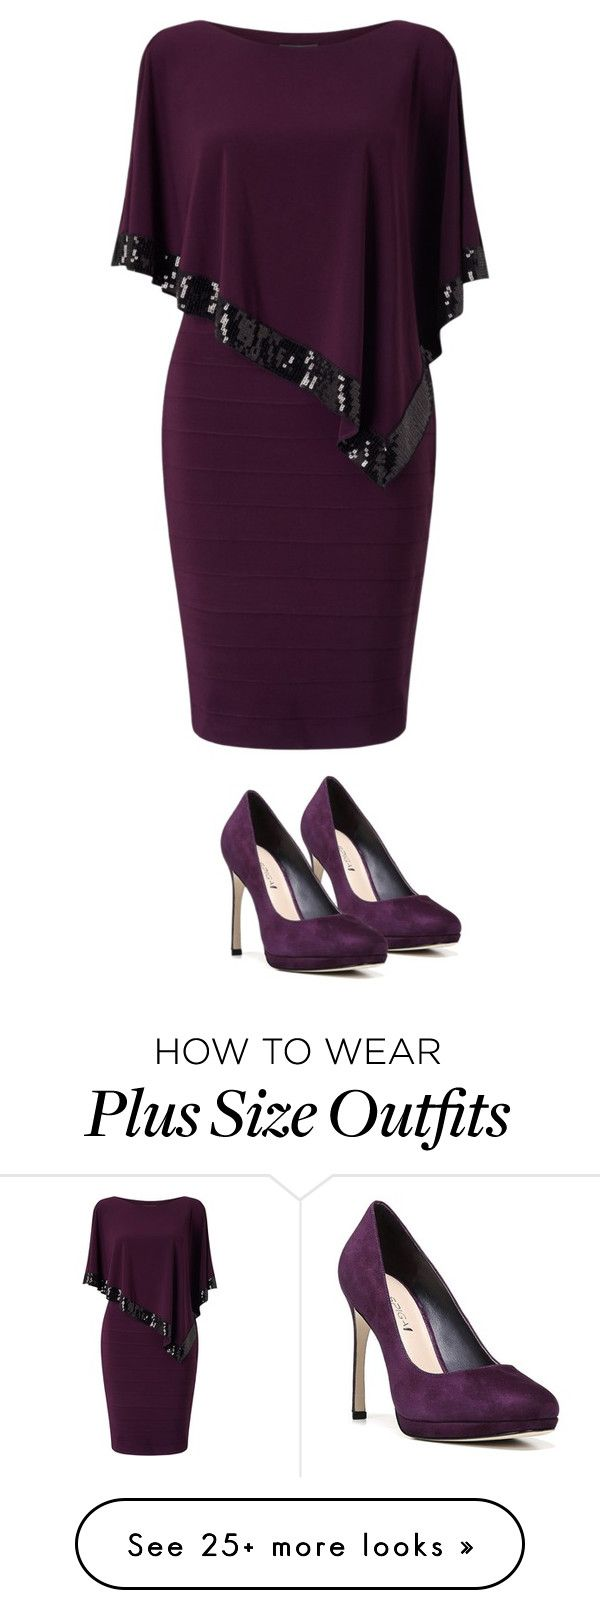 """Untitled #1979"" by yellowandpinkbunny on Polyvore featuring Adrianna Papell, Via Spiga and plus size dresses"